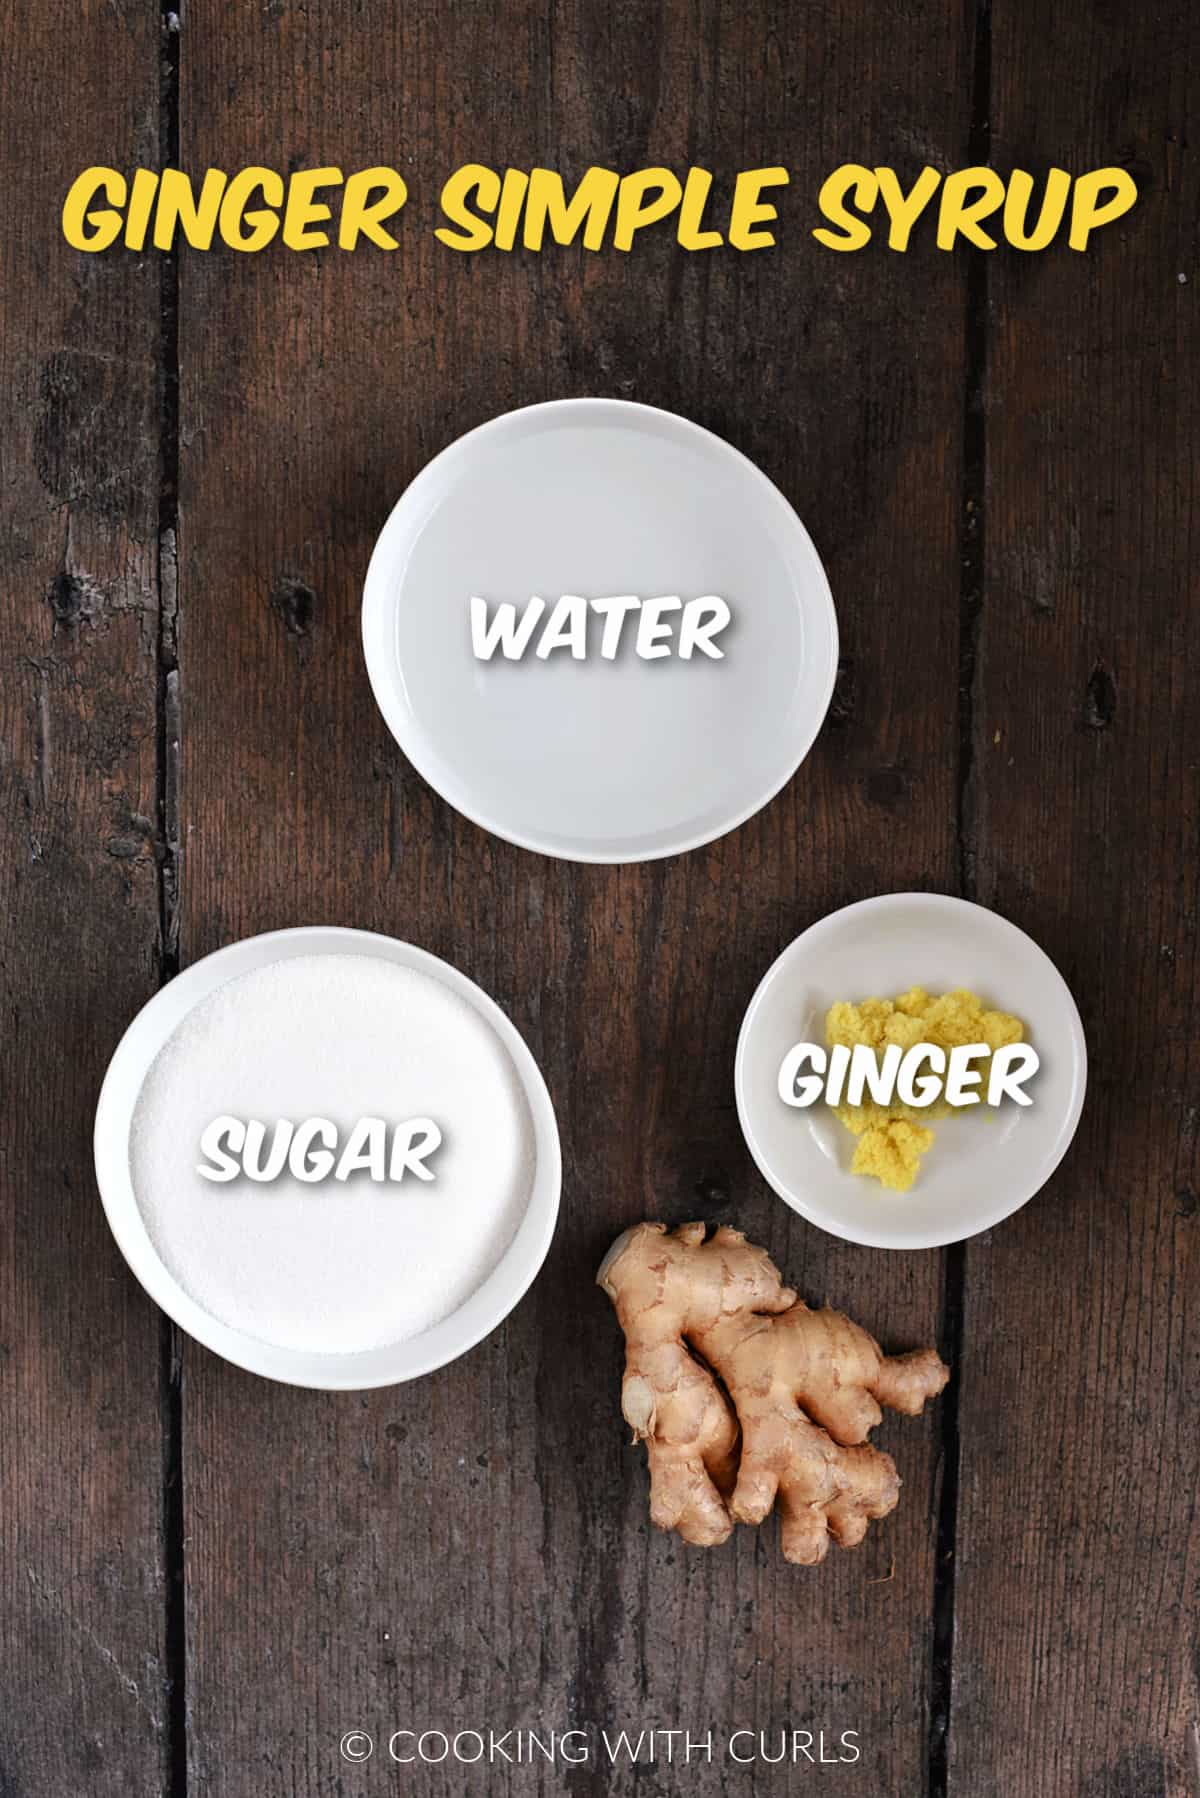 Ginger, sugar and water in small white bowls.